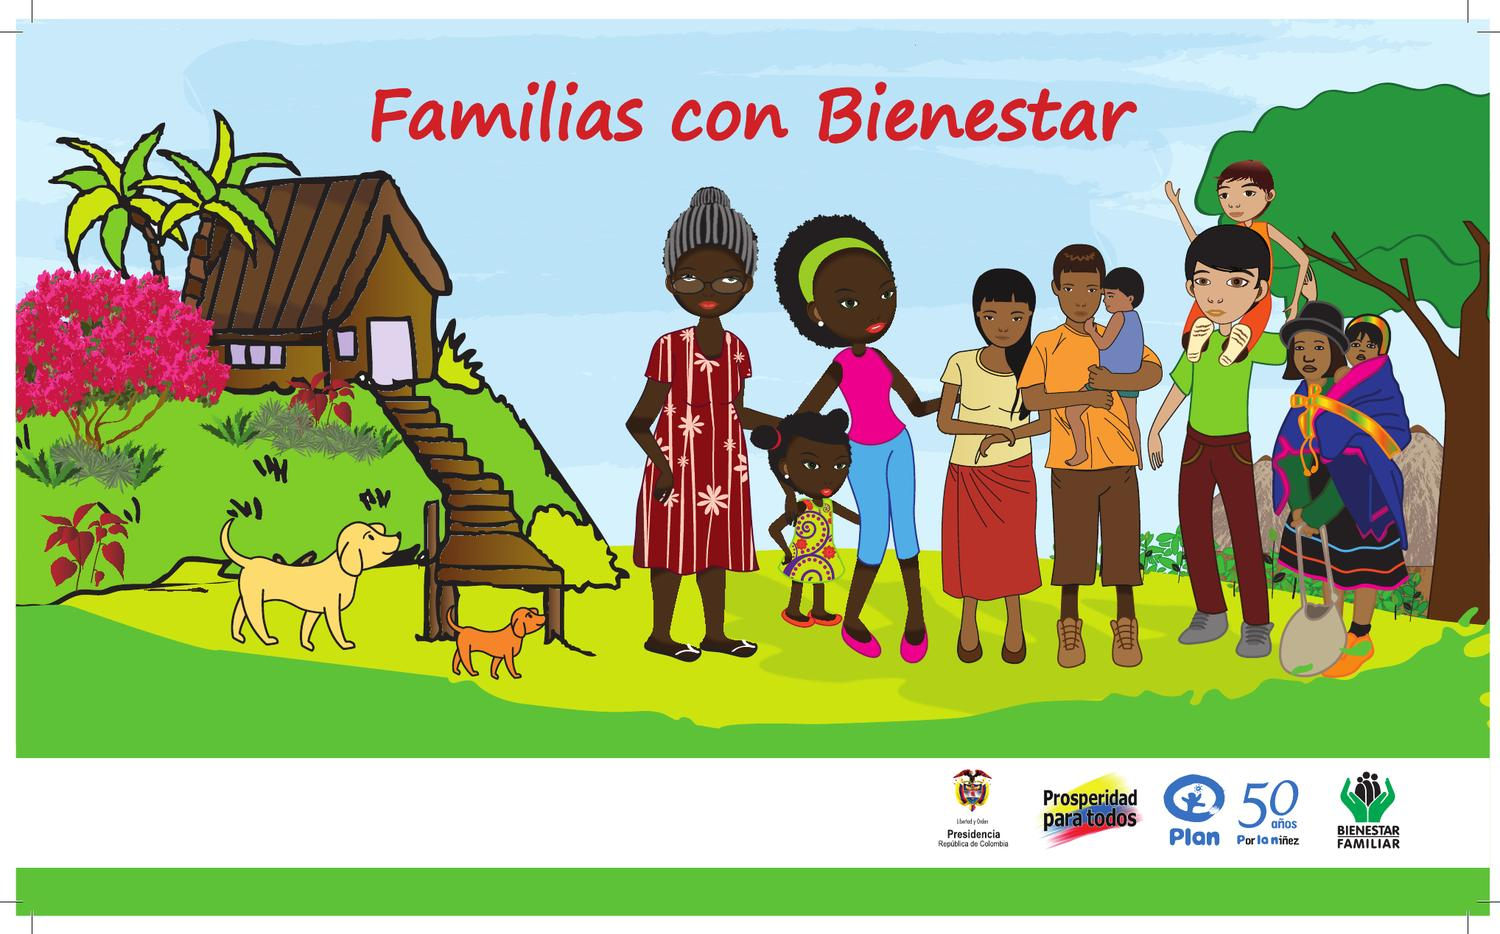 Cartillas familias con bienestar by fundaci n plan issuu for Oficina de bienestar social y familia